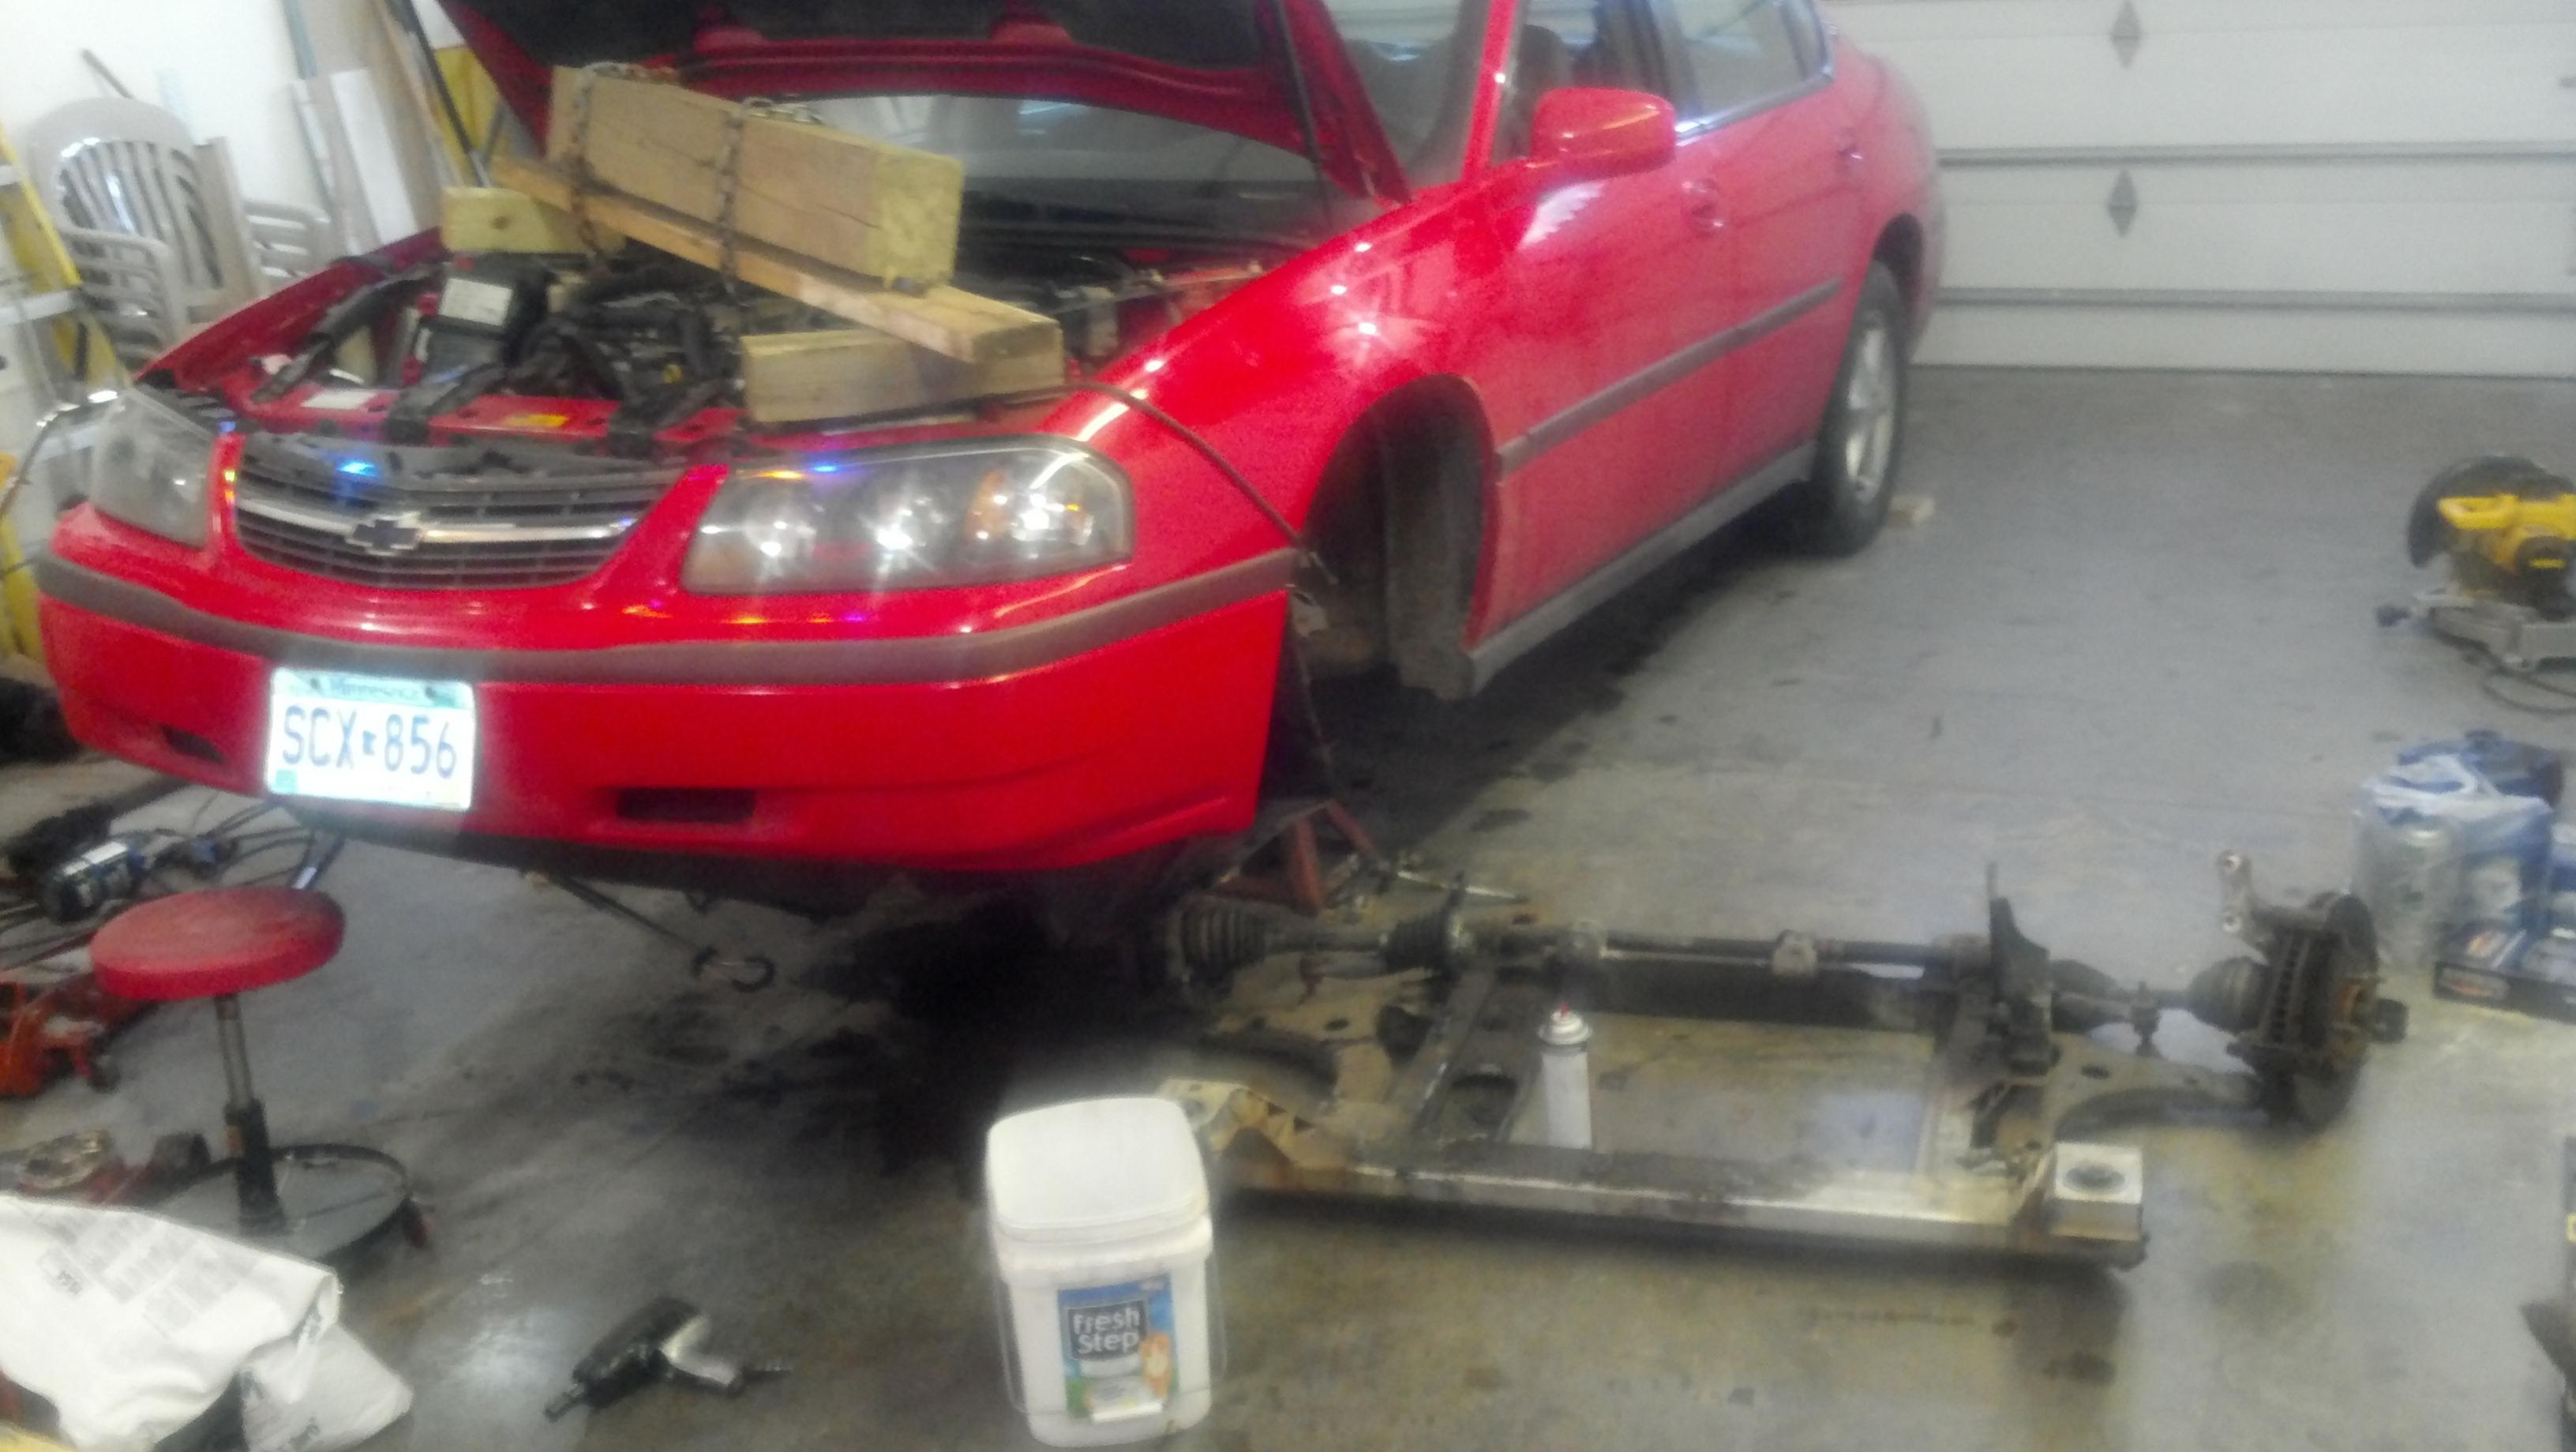 New Member 2000 Impala Transmission Problems Chevy Forums 350 Troubleshooting Click Image For Larger Version Name C360 2011 12 24 20